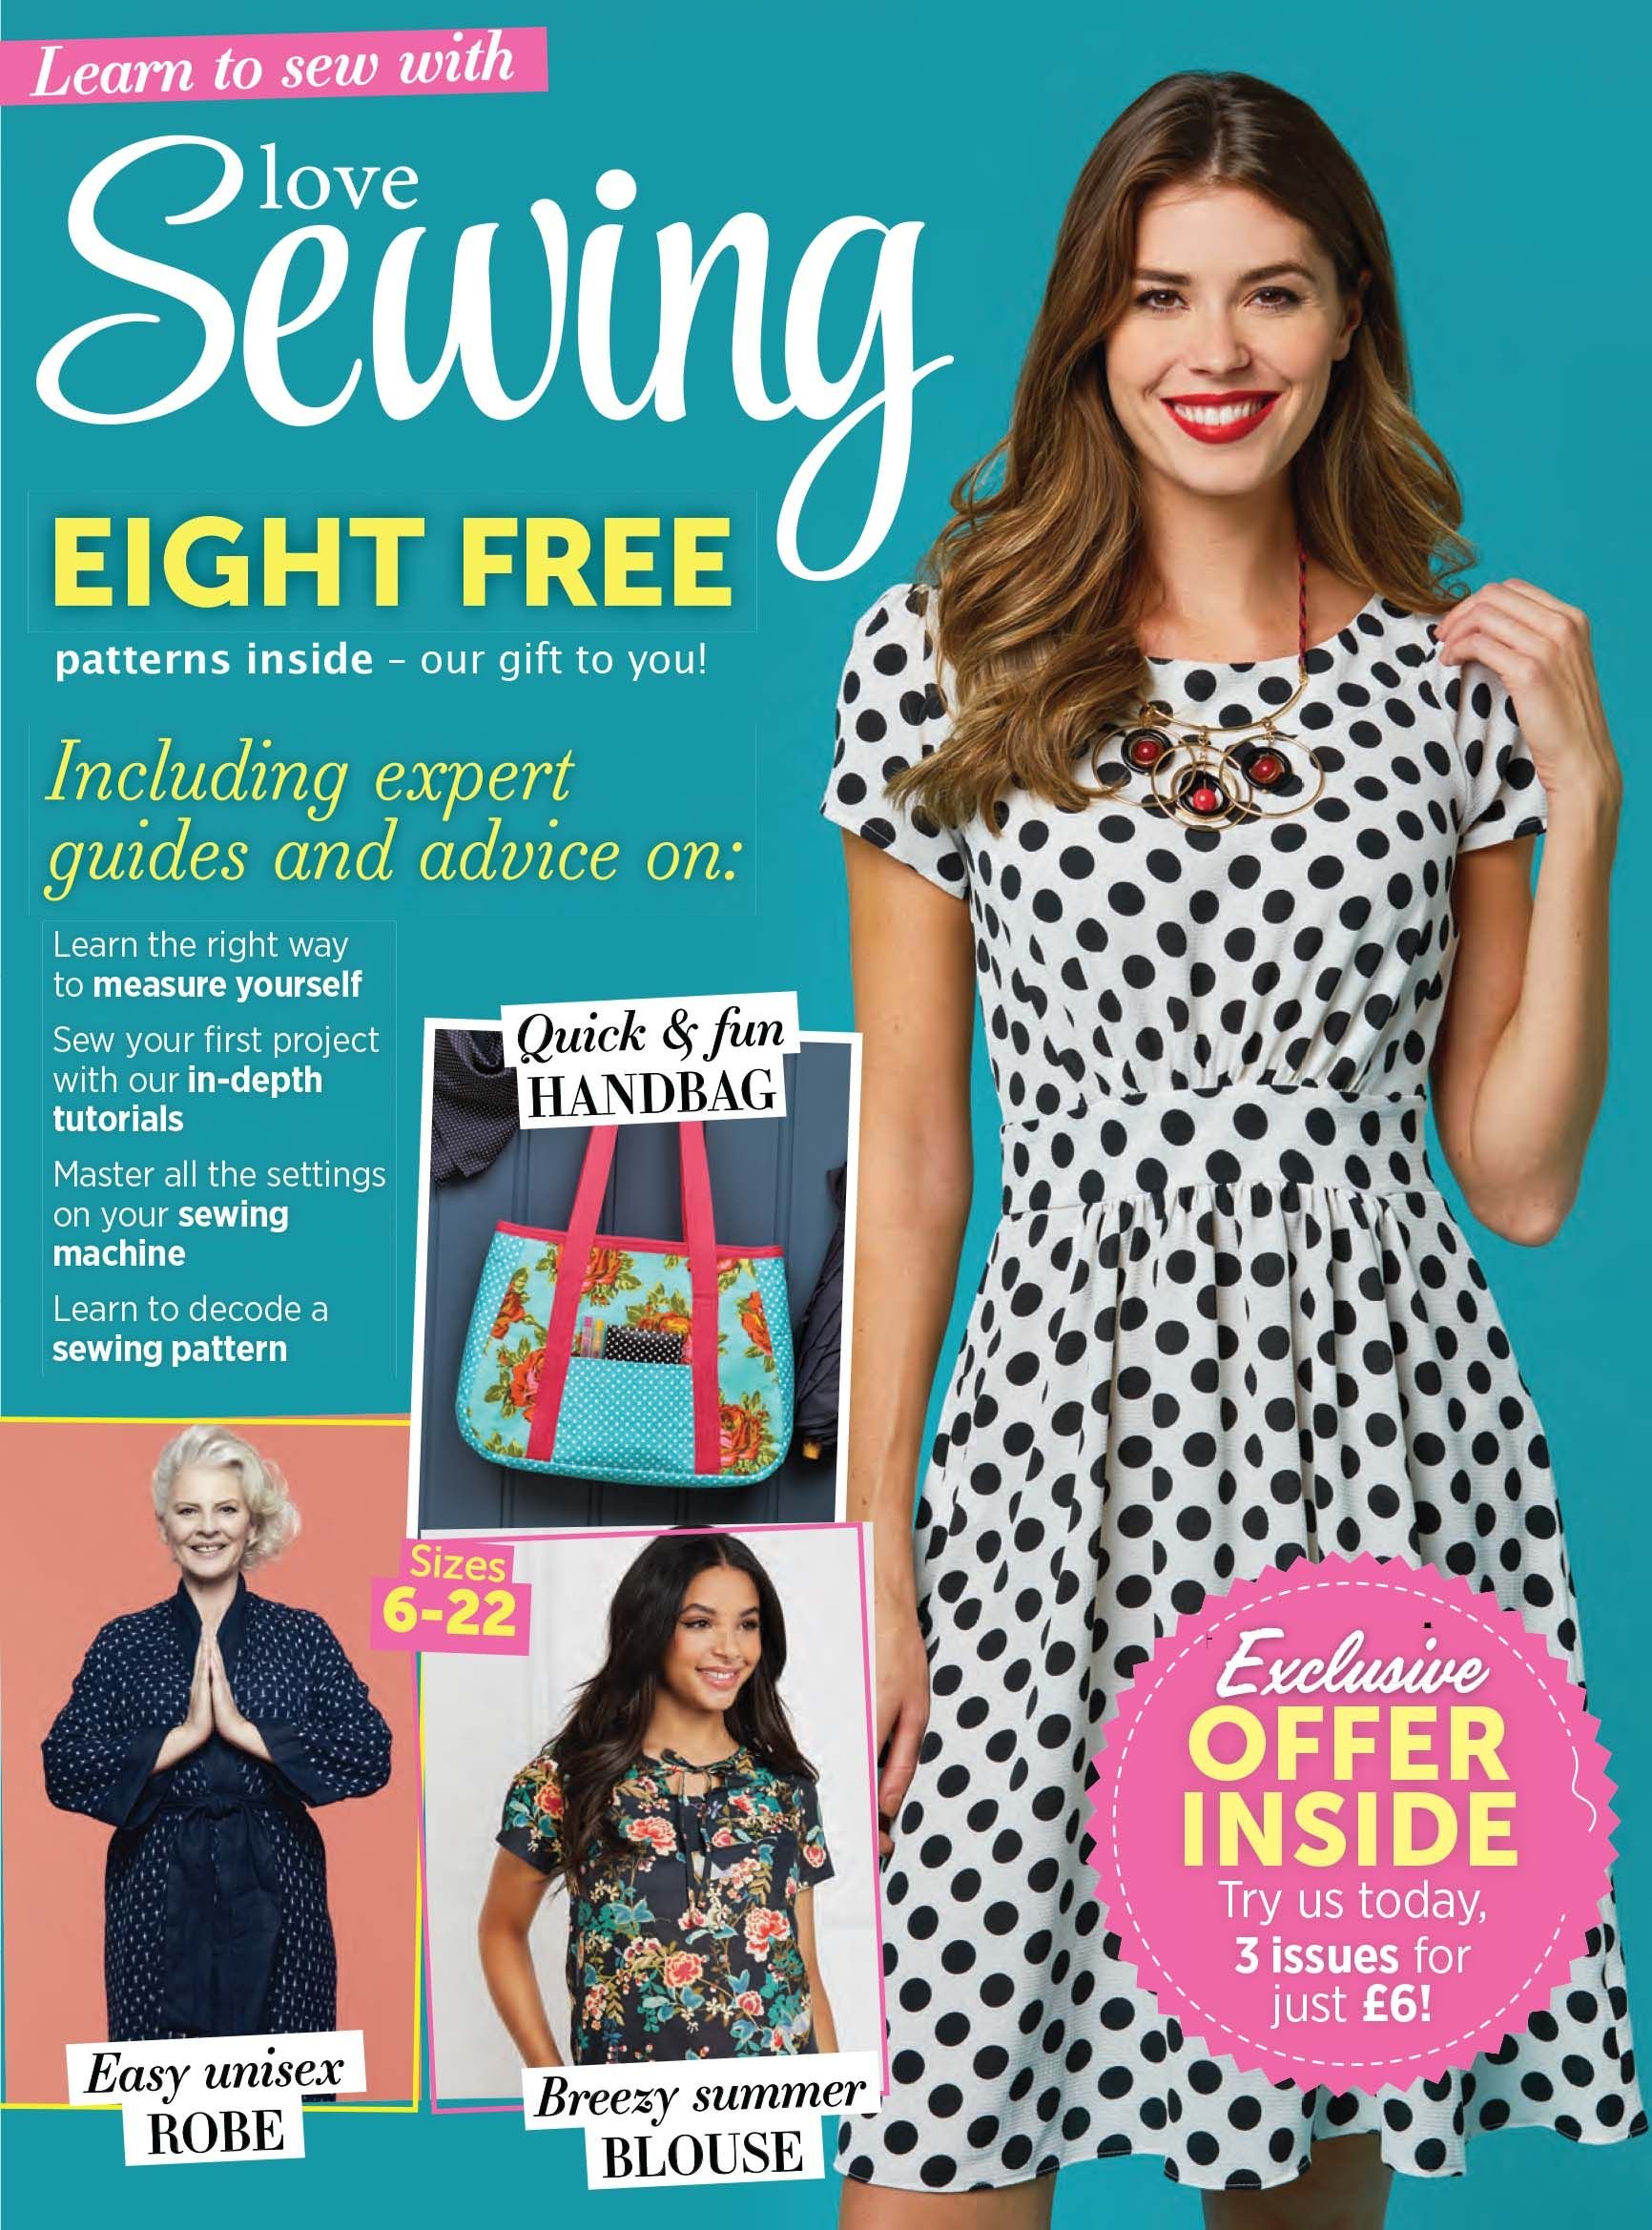 Beginner dressmaking guide with 8 free sewing pattern